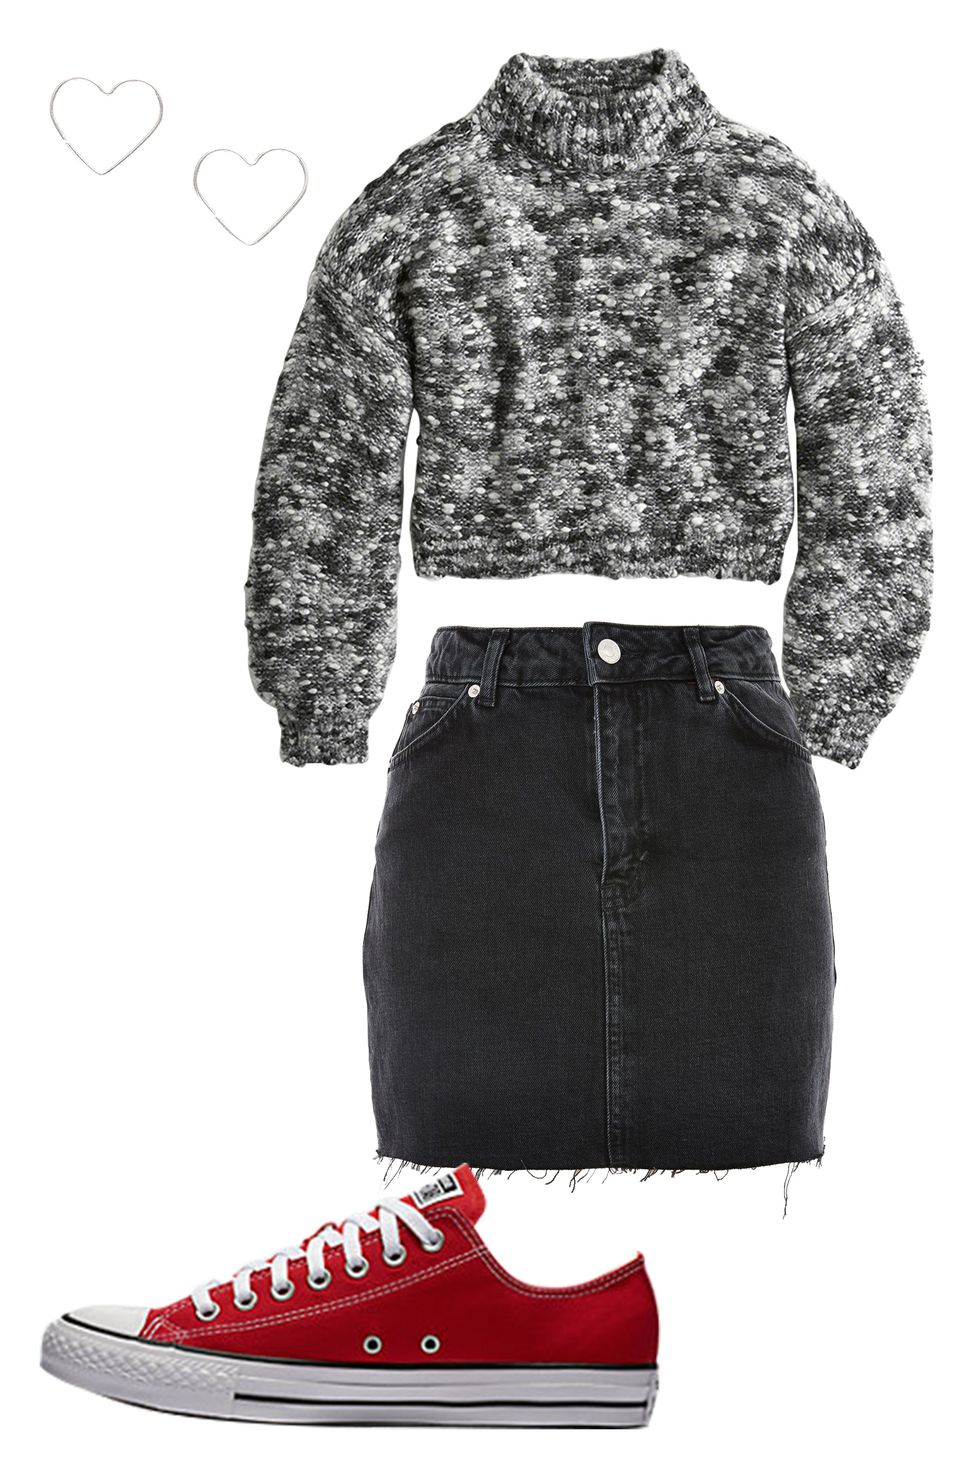 black-mini-skirt-red-shoe-sneakers-converse-grayl-sweater-howtowear-valentinesday-outfit-fall-winter-lunch.jpg